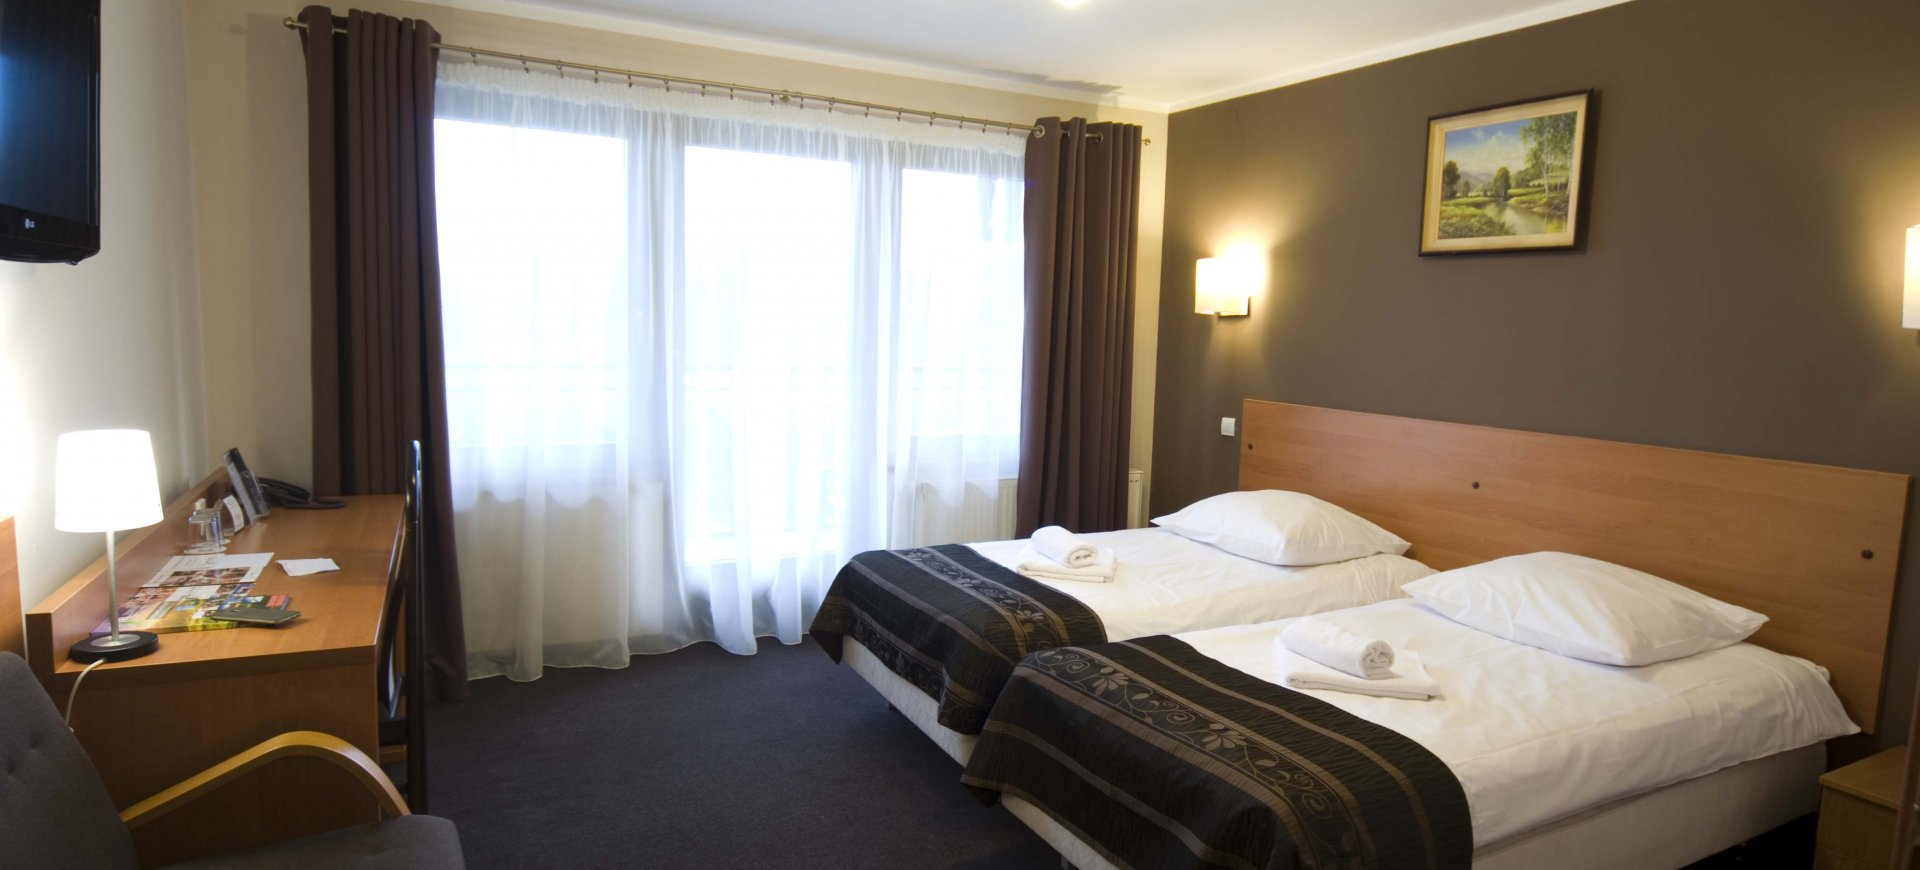 Double Room (***) - 3stars standard